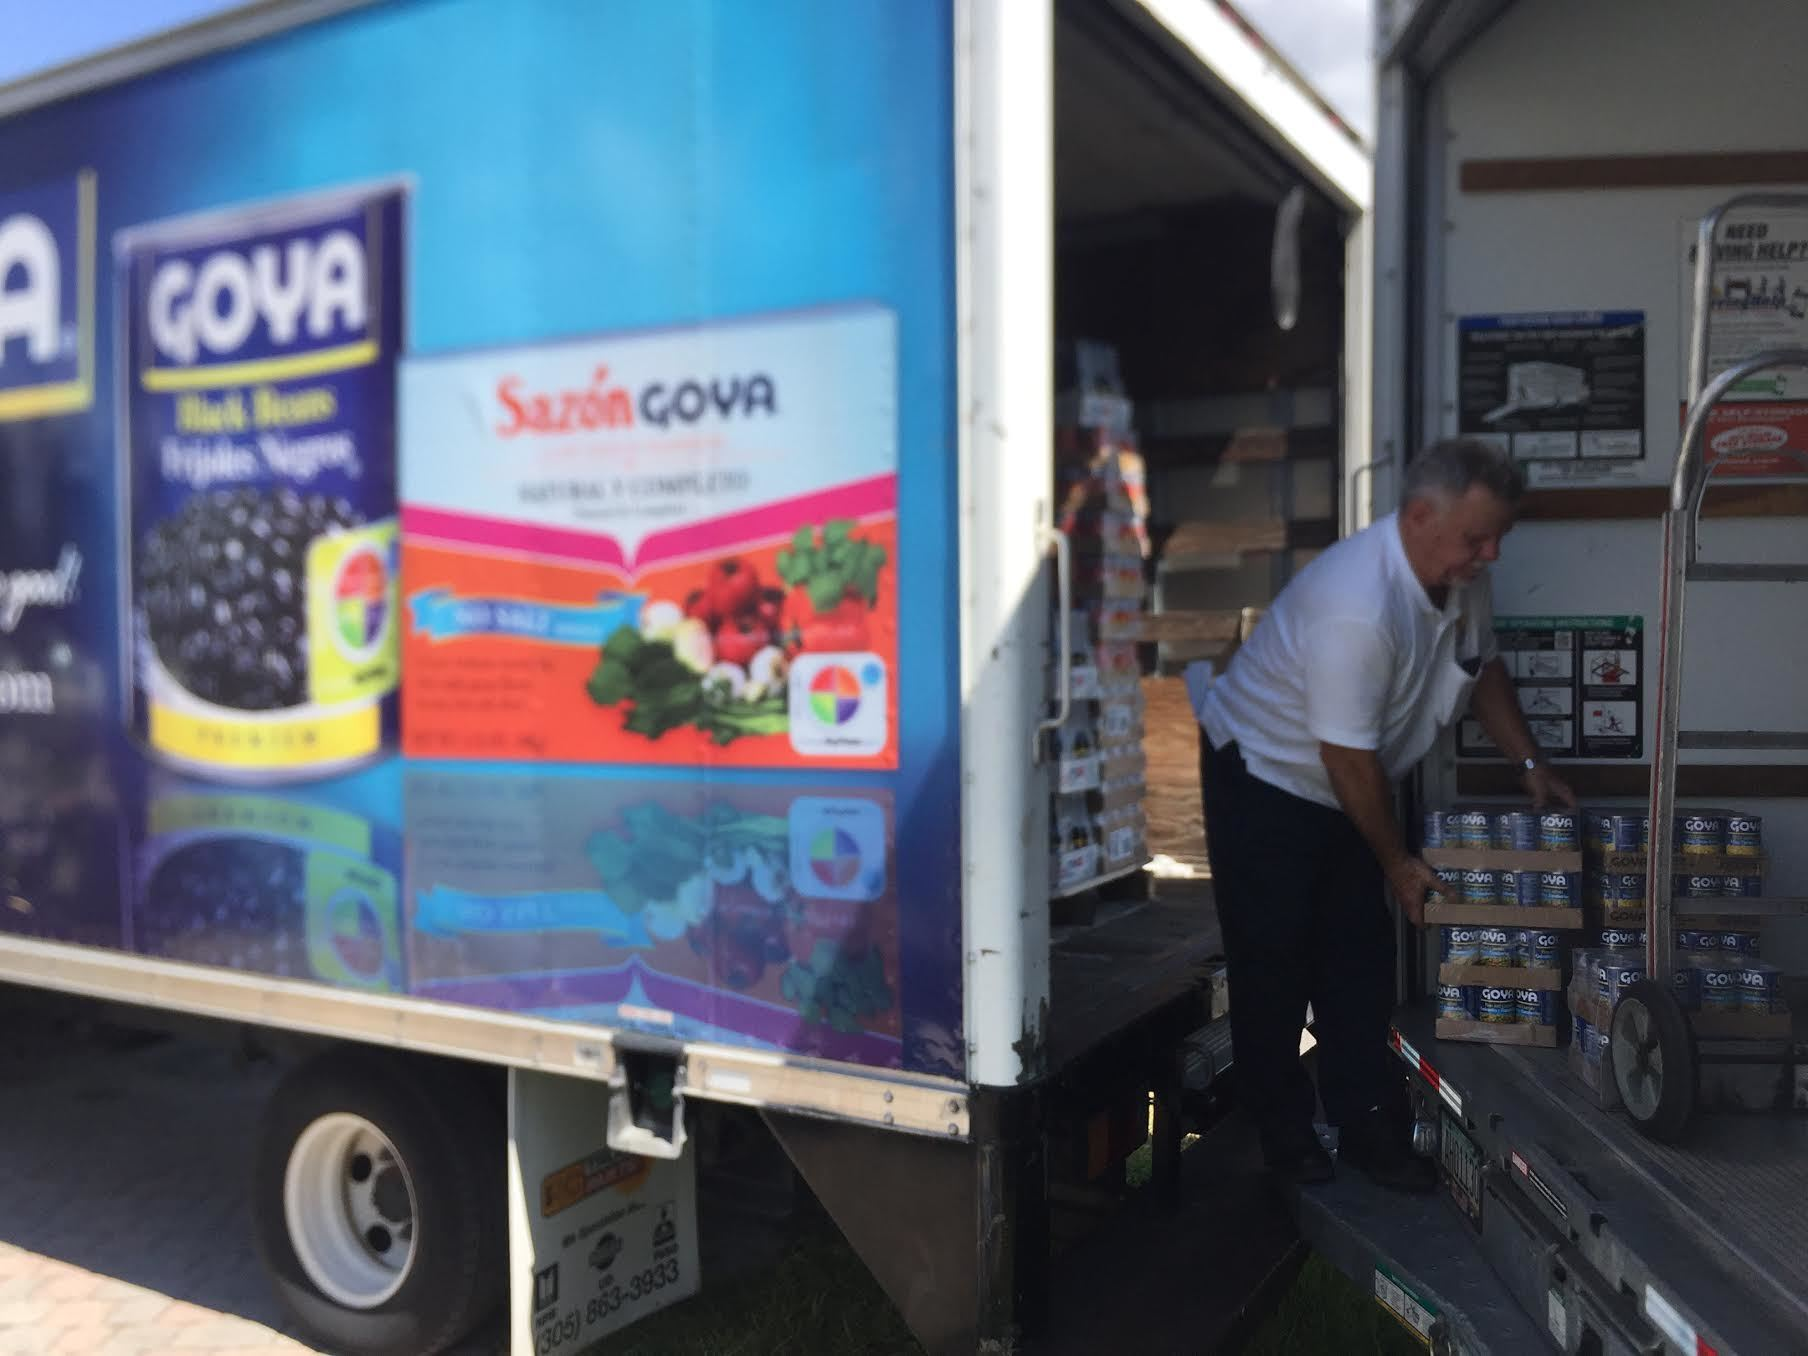 GOYA FOODS OF FLORIDA RESPONDS TO FLORIDA'S NEEDS IN THE AFTERMATH OF HURRICANE IRMA